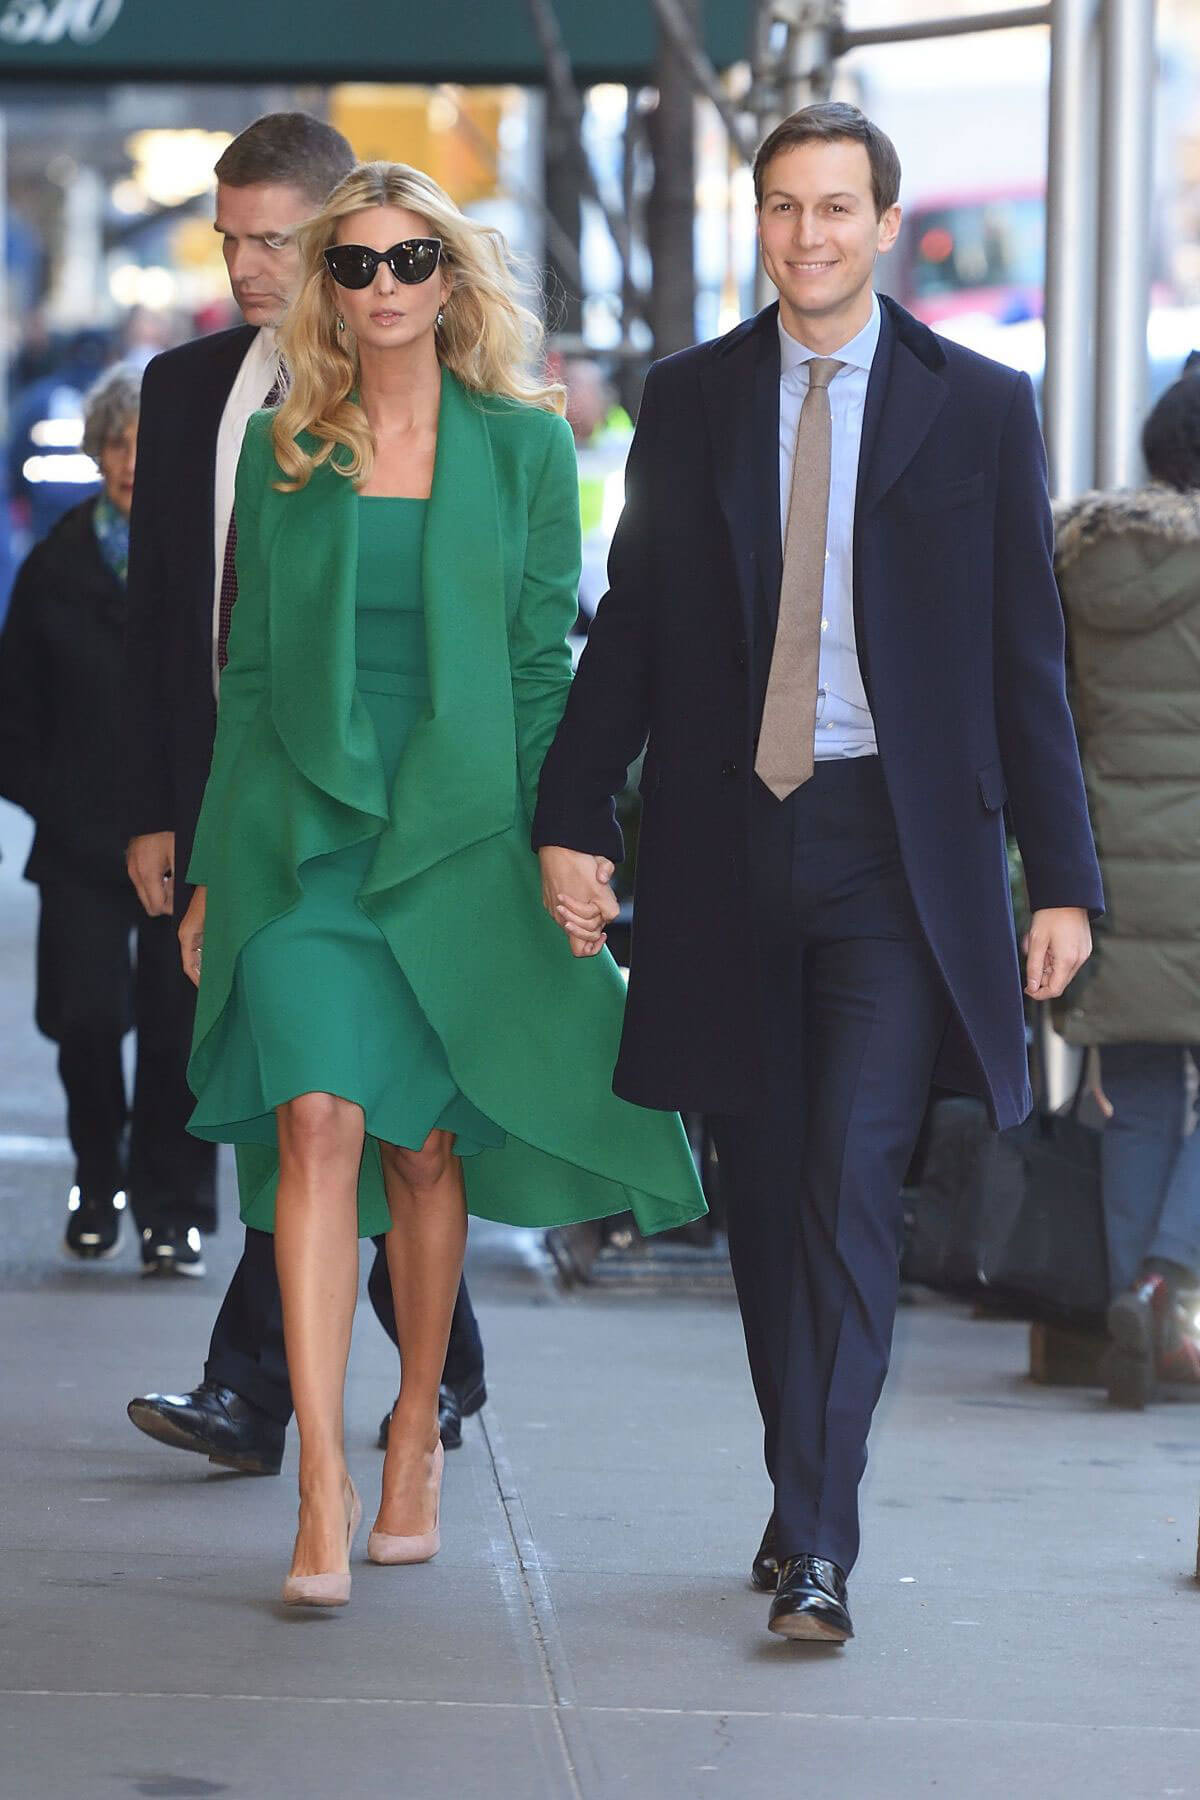 Ivanka Trump out with Her Husband Jared Kushner in New York